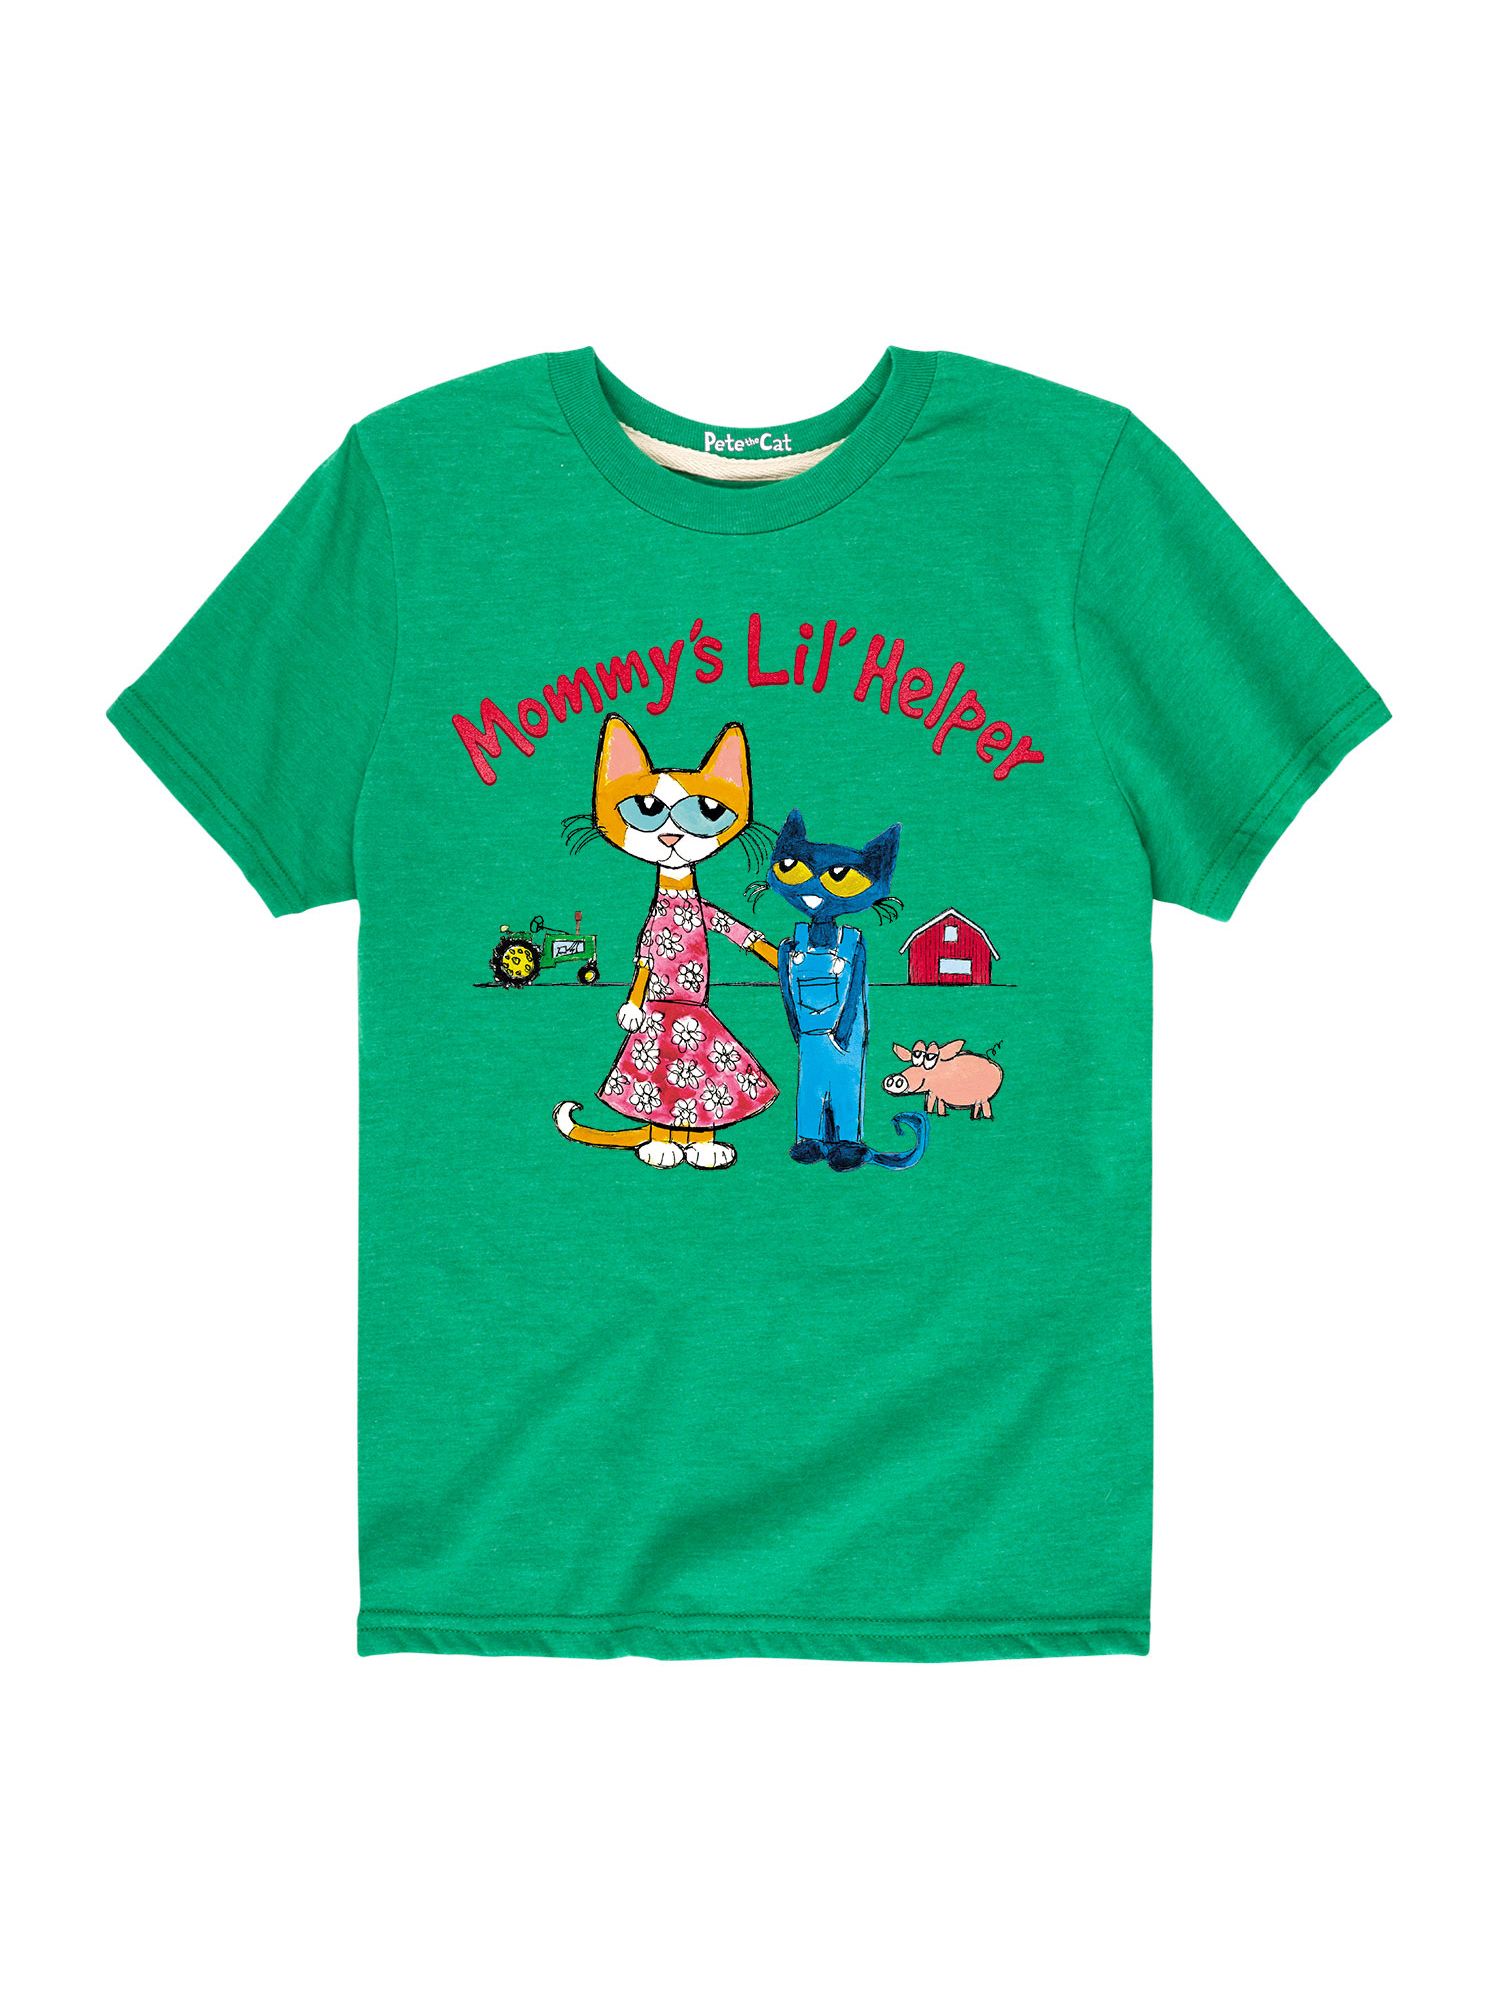 Pete The Cat Mommys Lil Helper - Toddler Short Sleeve Tee